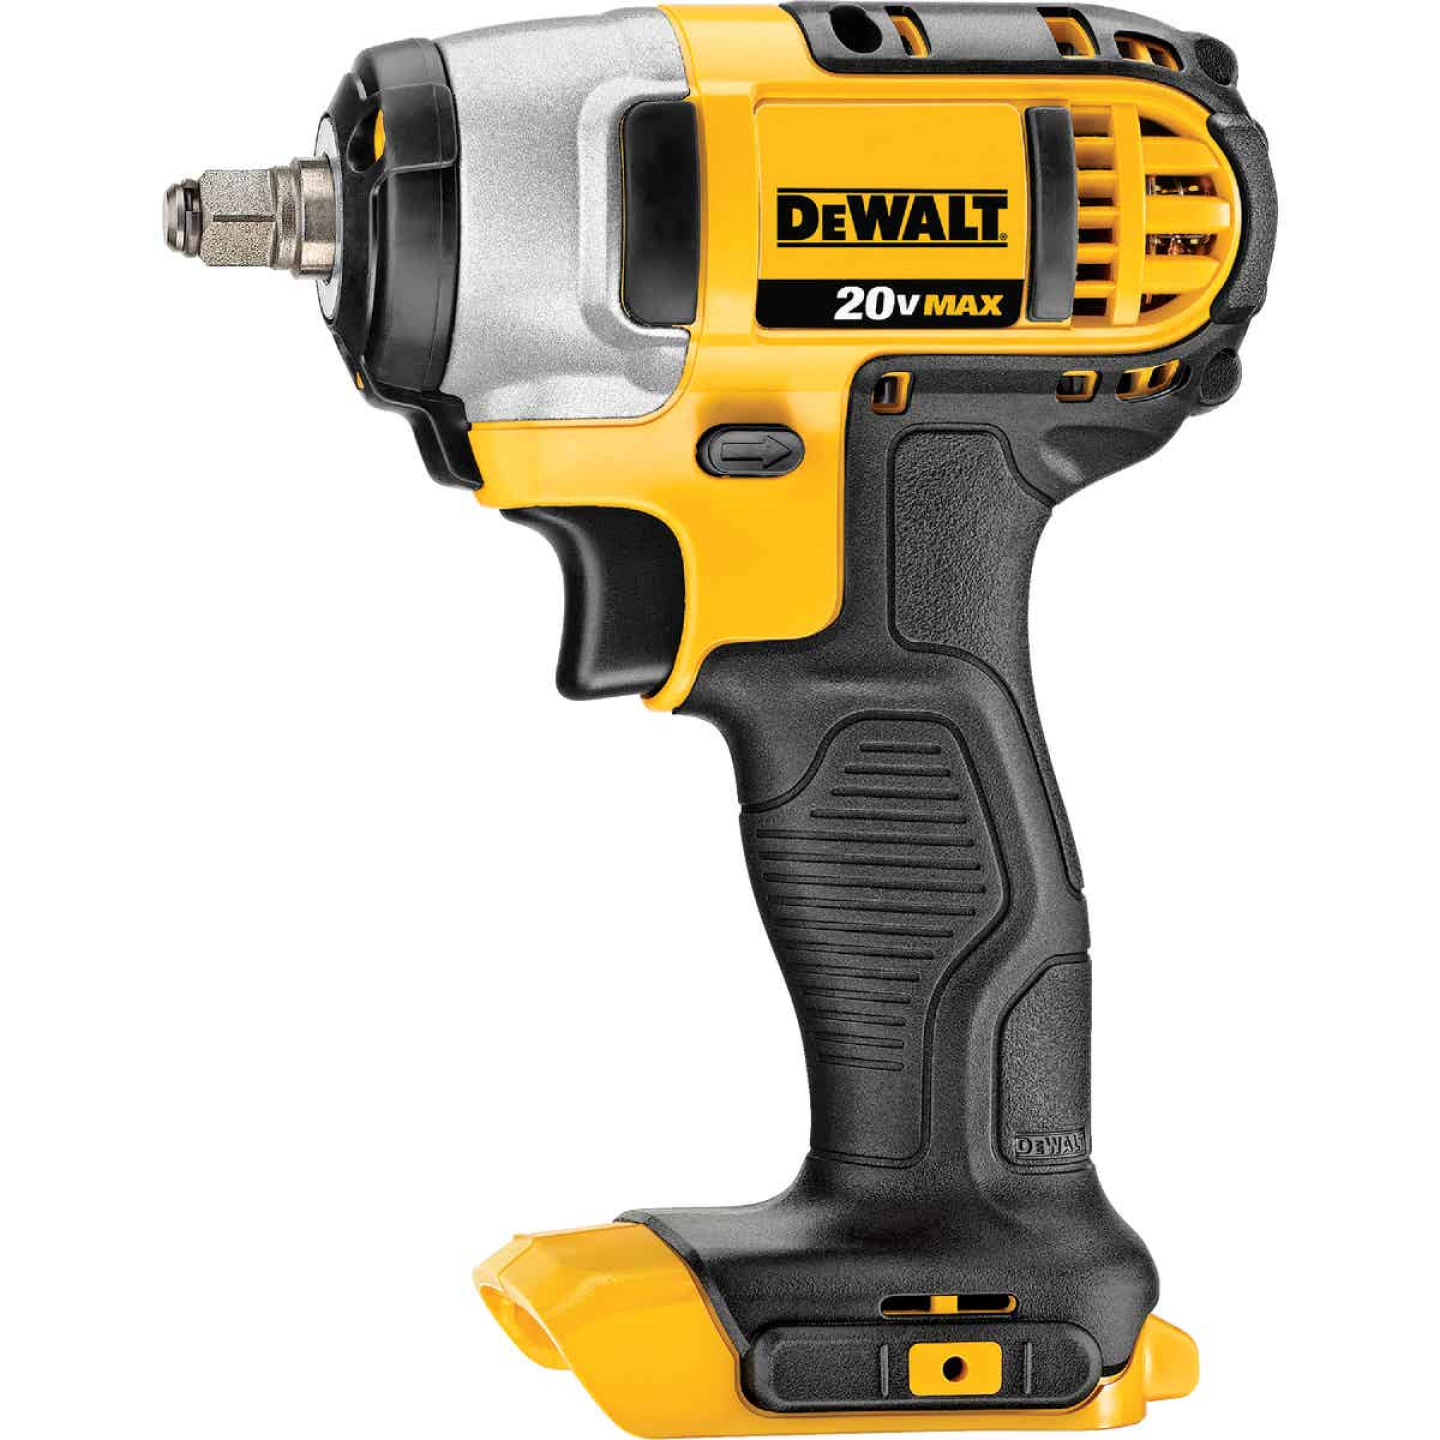 DeWalt 20 Volt MAX Lithium-Ion 3/8 In. Cordless Impact Wrench (Bare Tool) Image 1